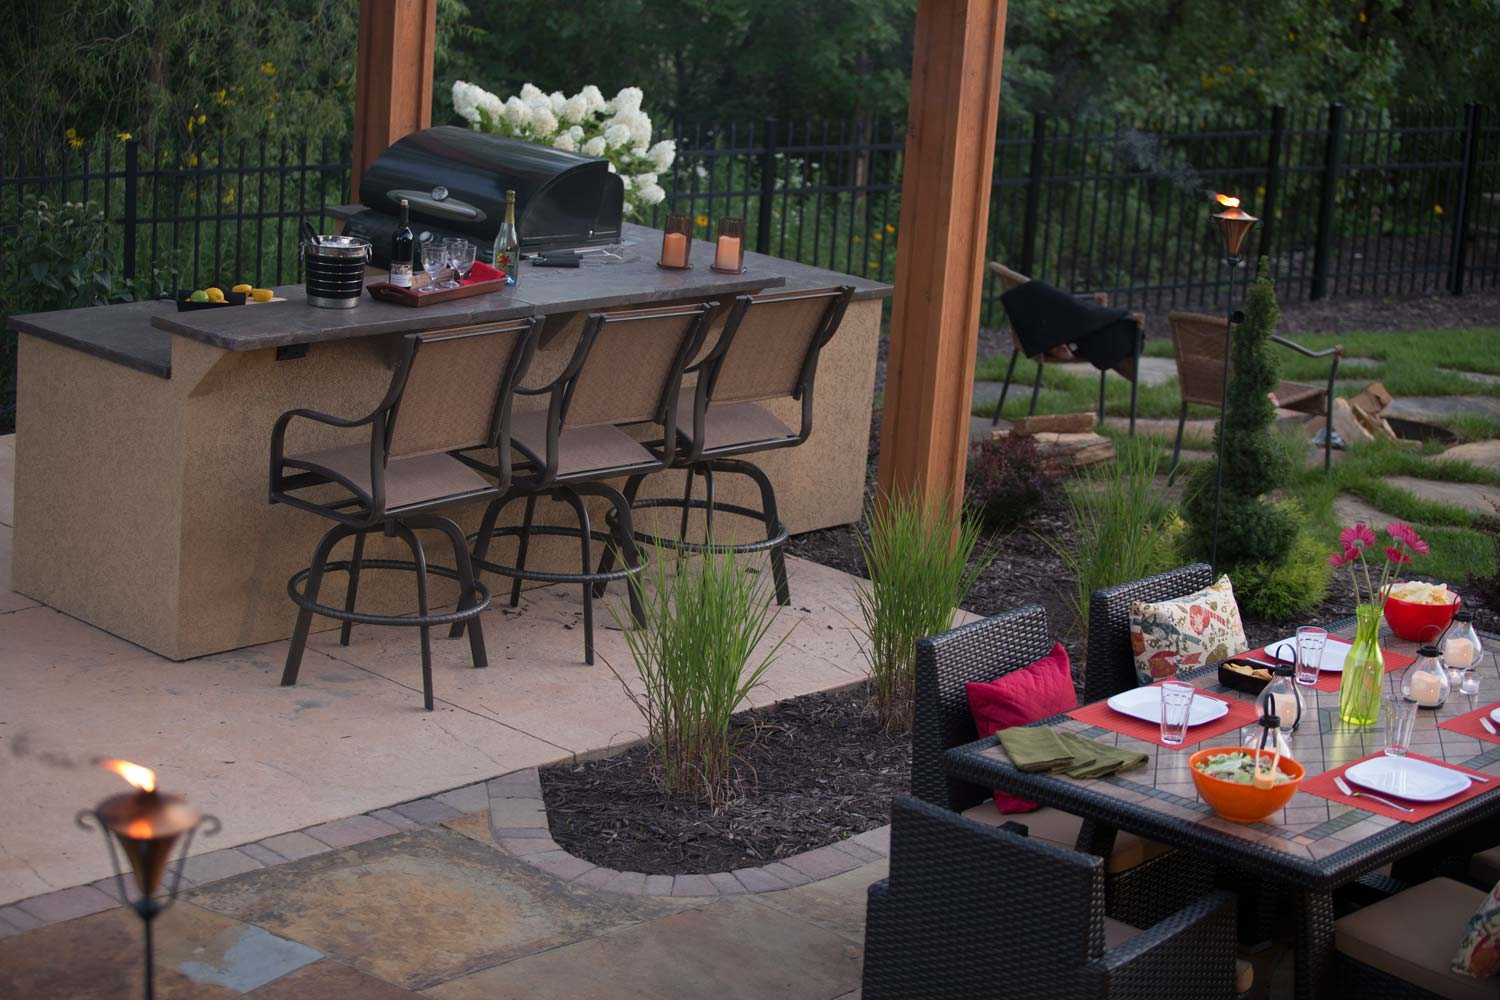 dining patio separated from outdoor pergola bar by tall grass plantings